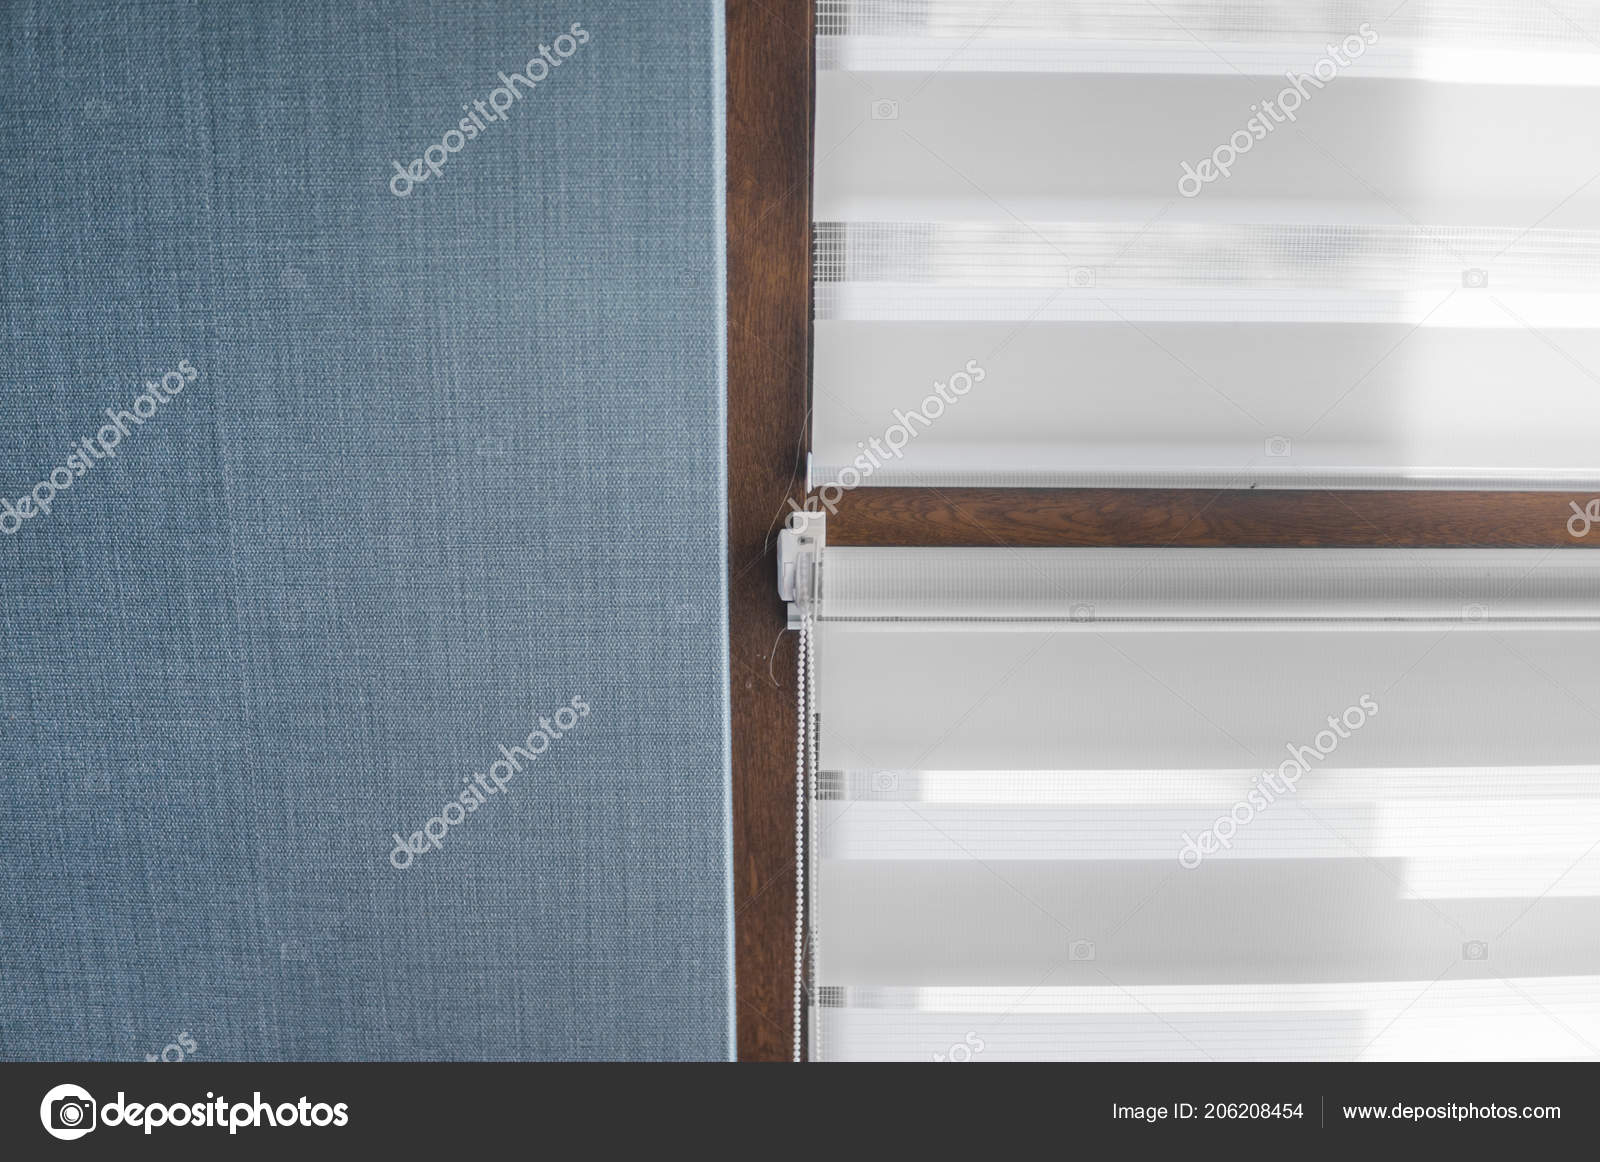 White Fabric Roller Blinds On The Plastic Window With Wood Texture In The Living Room With Blue Wall Stock Photo C Volodymyrshtun 206208454